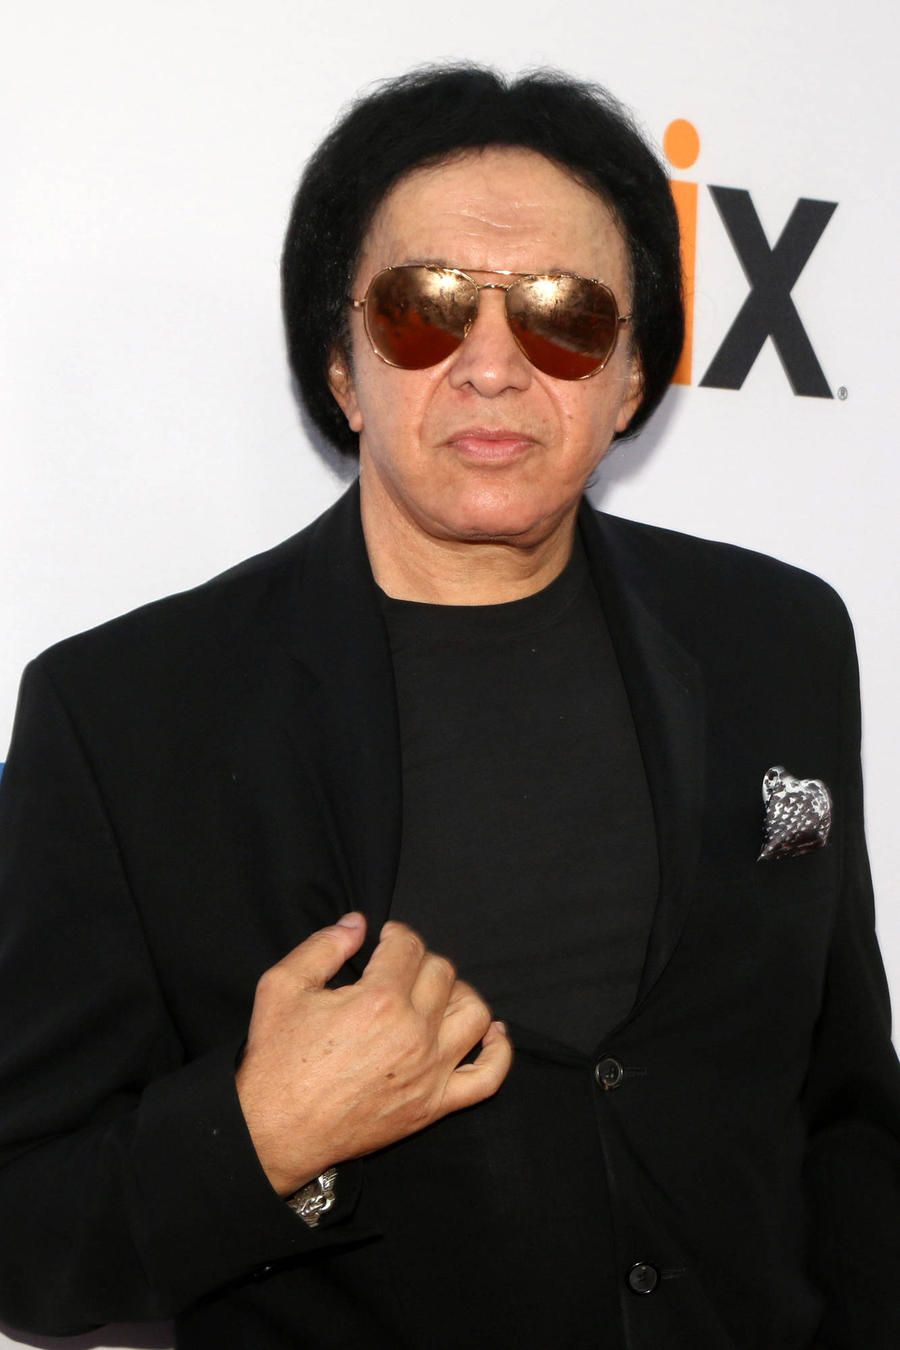 Sharon Osbourne: 'Gene Simmons Has No Place Commenting On Prince's Drug Troubles'